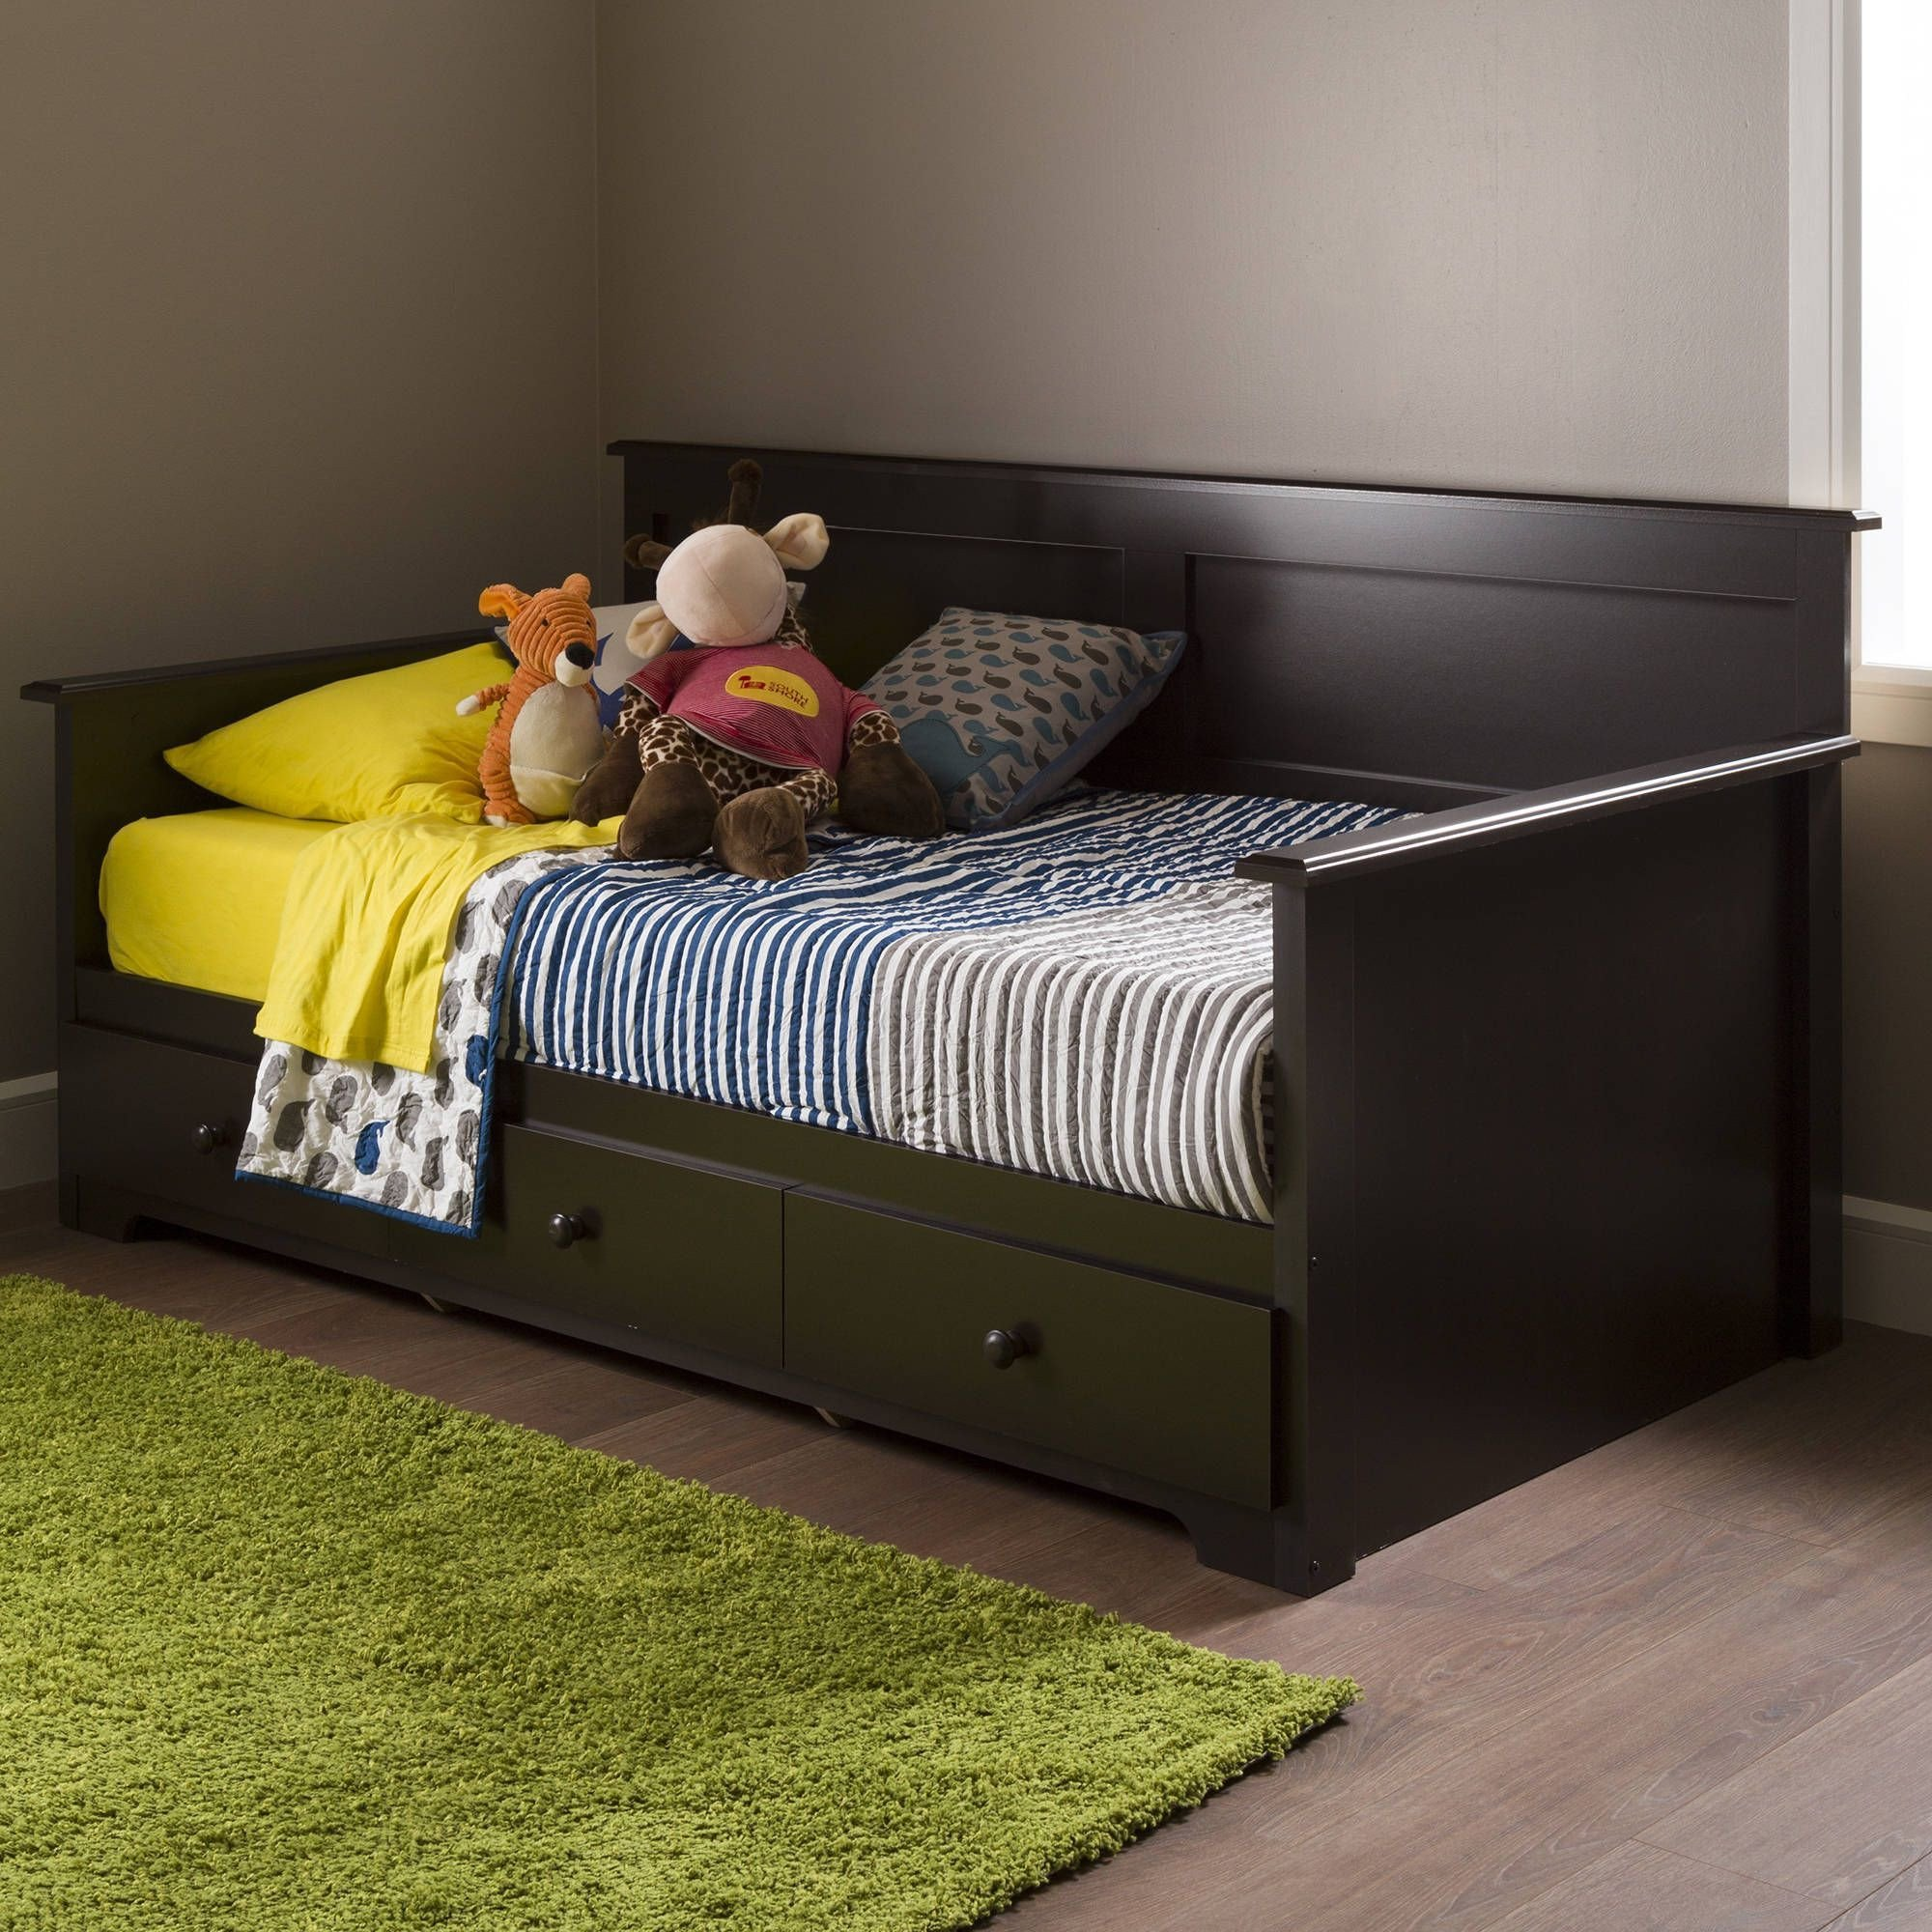 South Shore Bedroom Set New south Shore Summer Breeze Twin Daybed with Storage